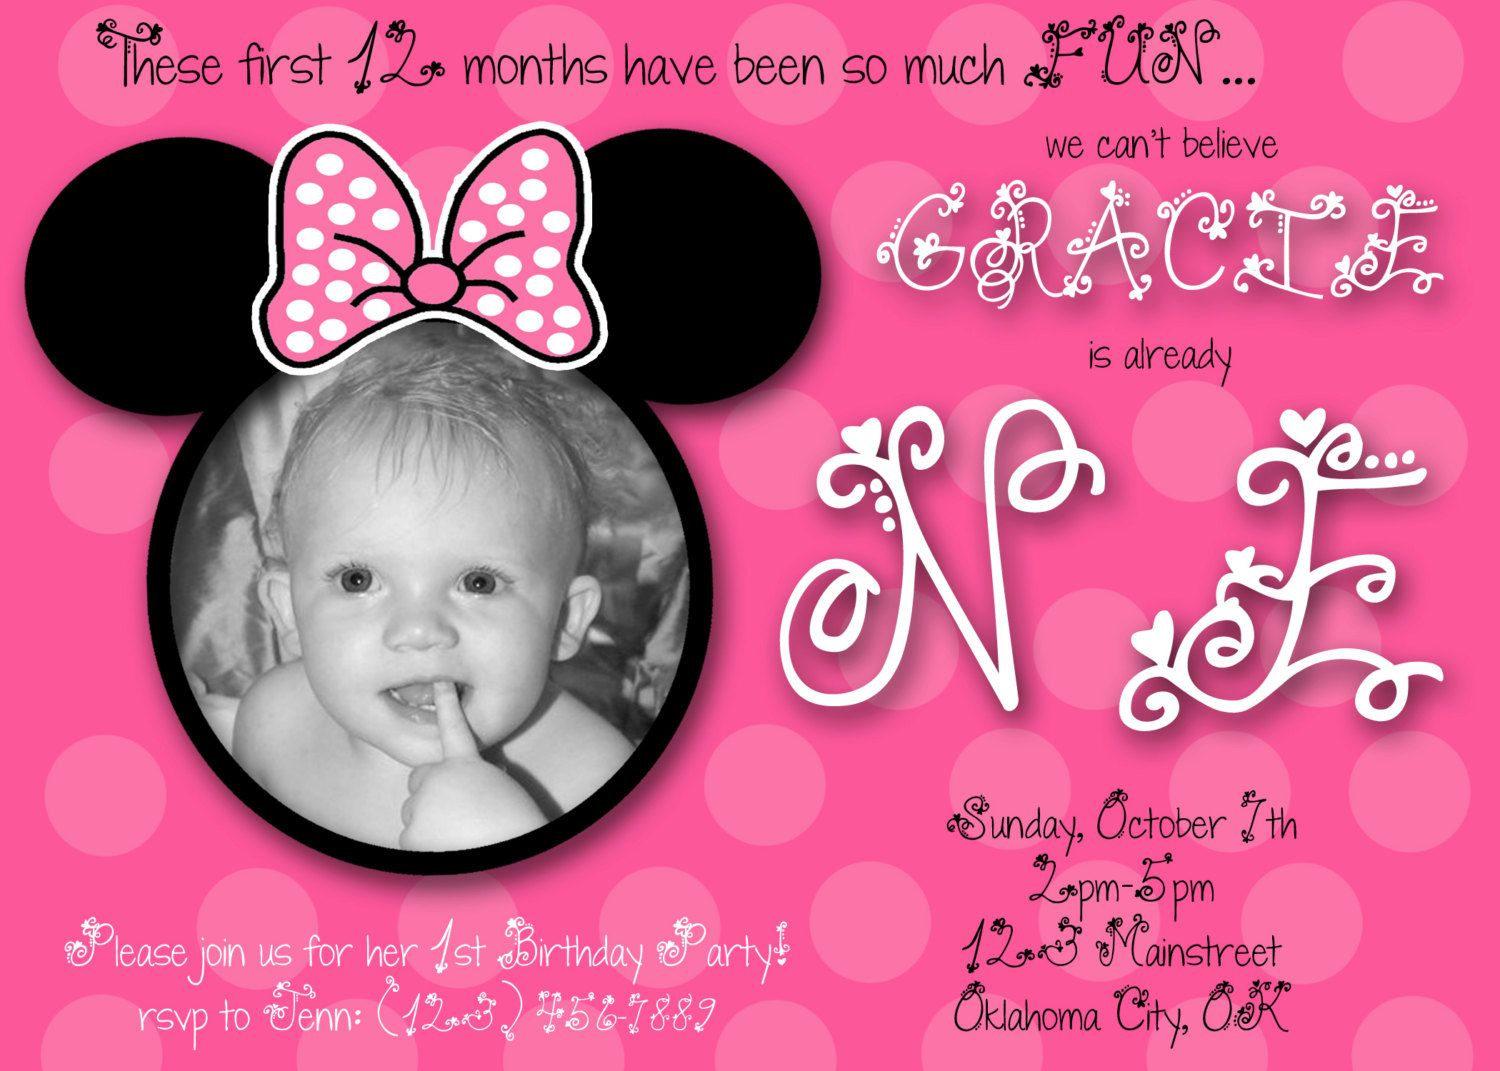 Minnie mouse first birthday custom invitation 1000 via etsy minnie mouse first birthday custom invitation 1000 via etsy filmwisefo